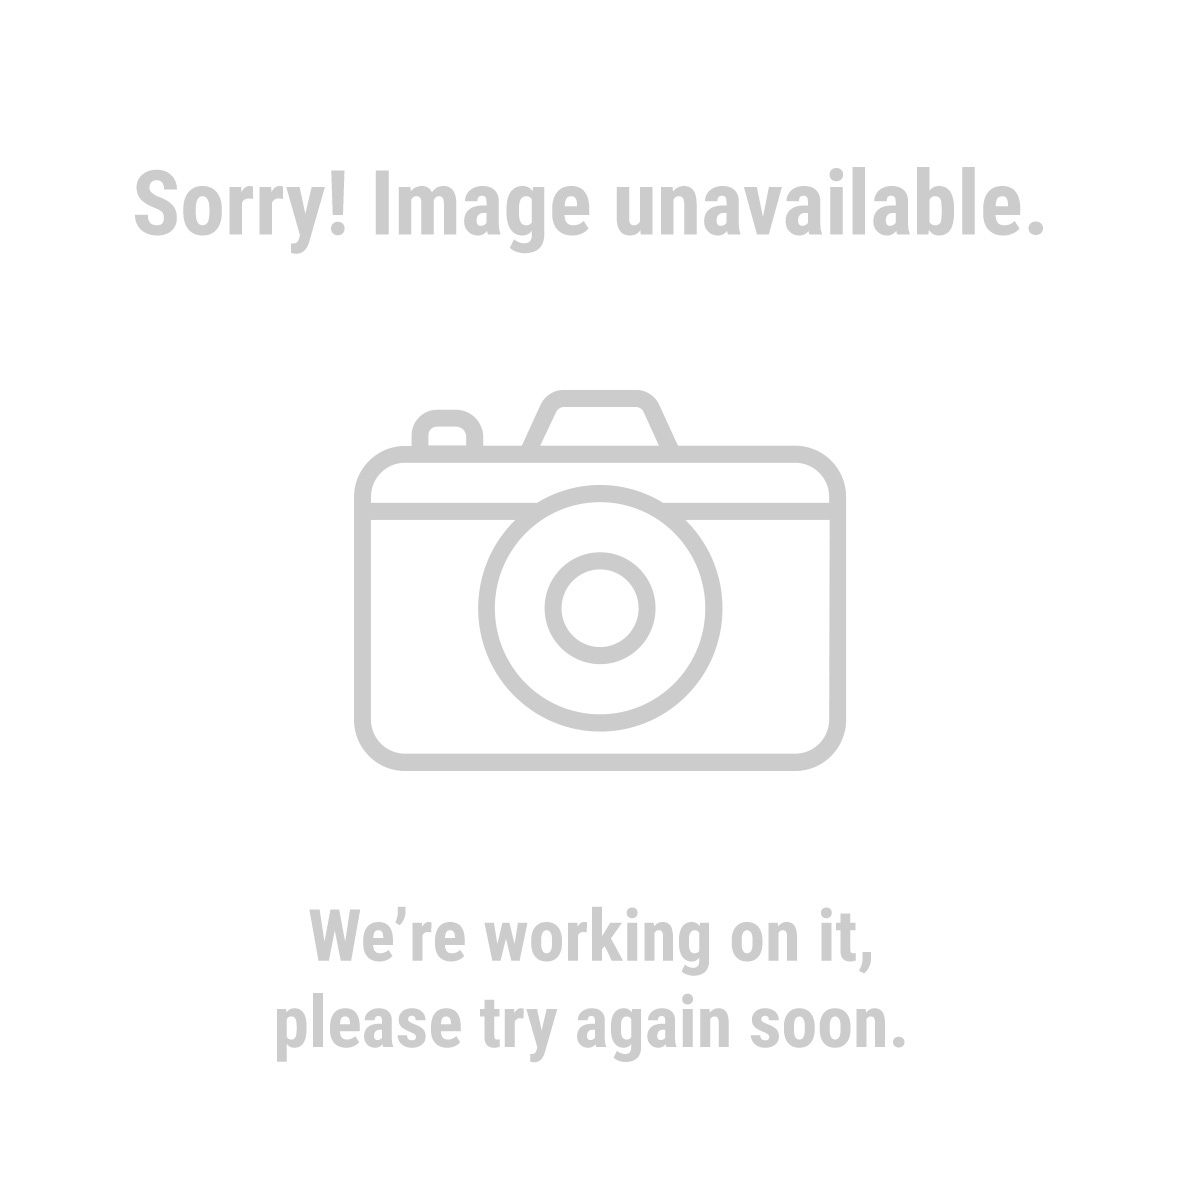 HFT® 69207 49 ft. x 29 ft. 4 in. Reflective Heavy Duty Silver Tarp